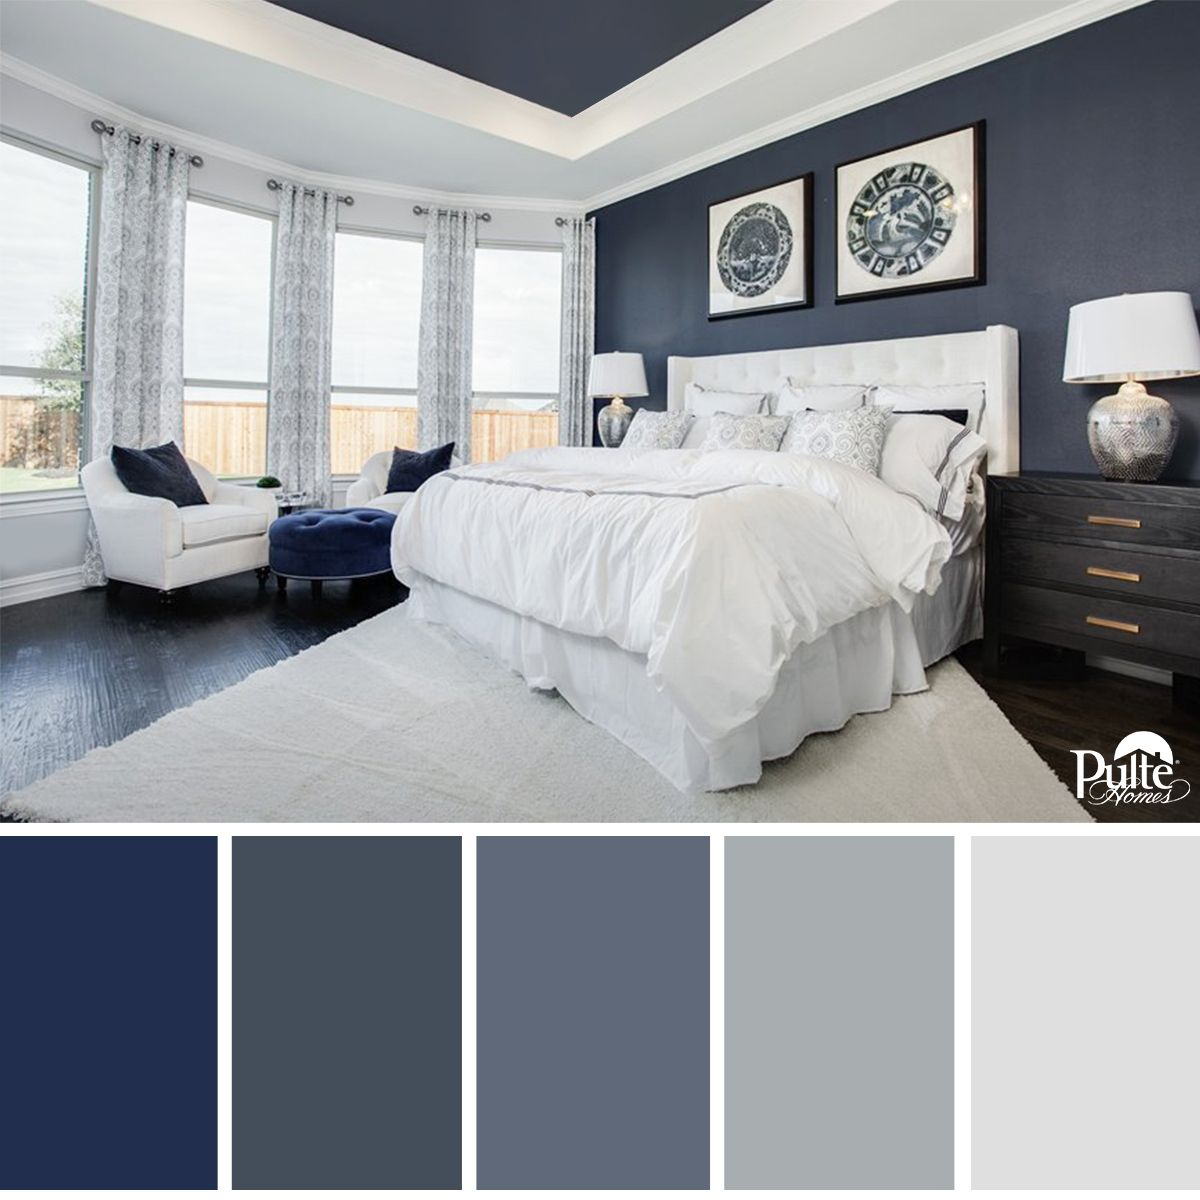 Home Design Color Ideas: This Bedroom Design Has The Right Idea. The Rich Blue